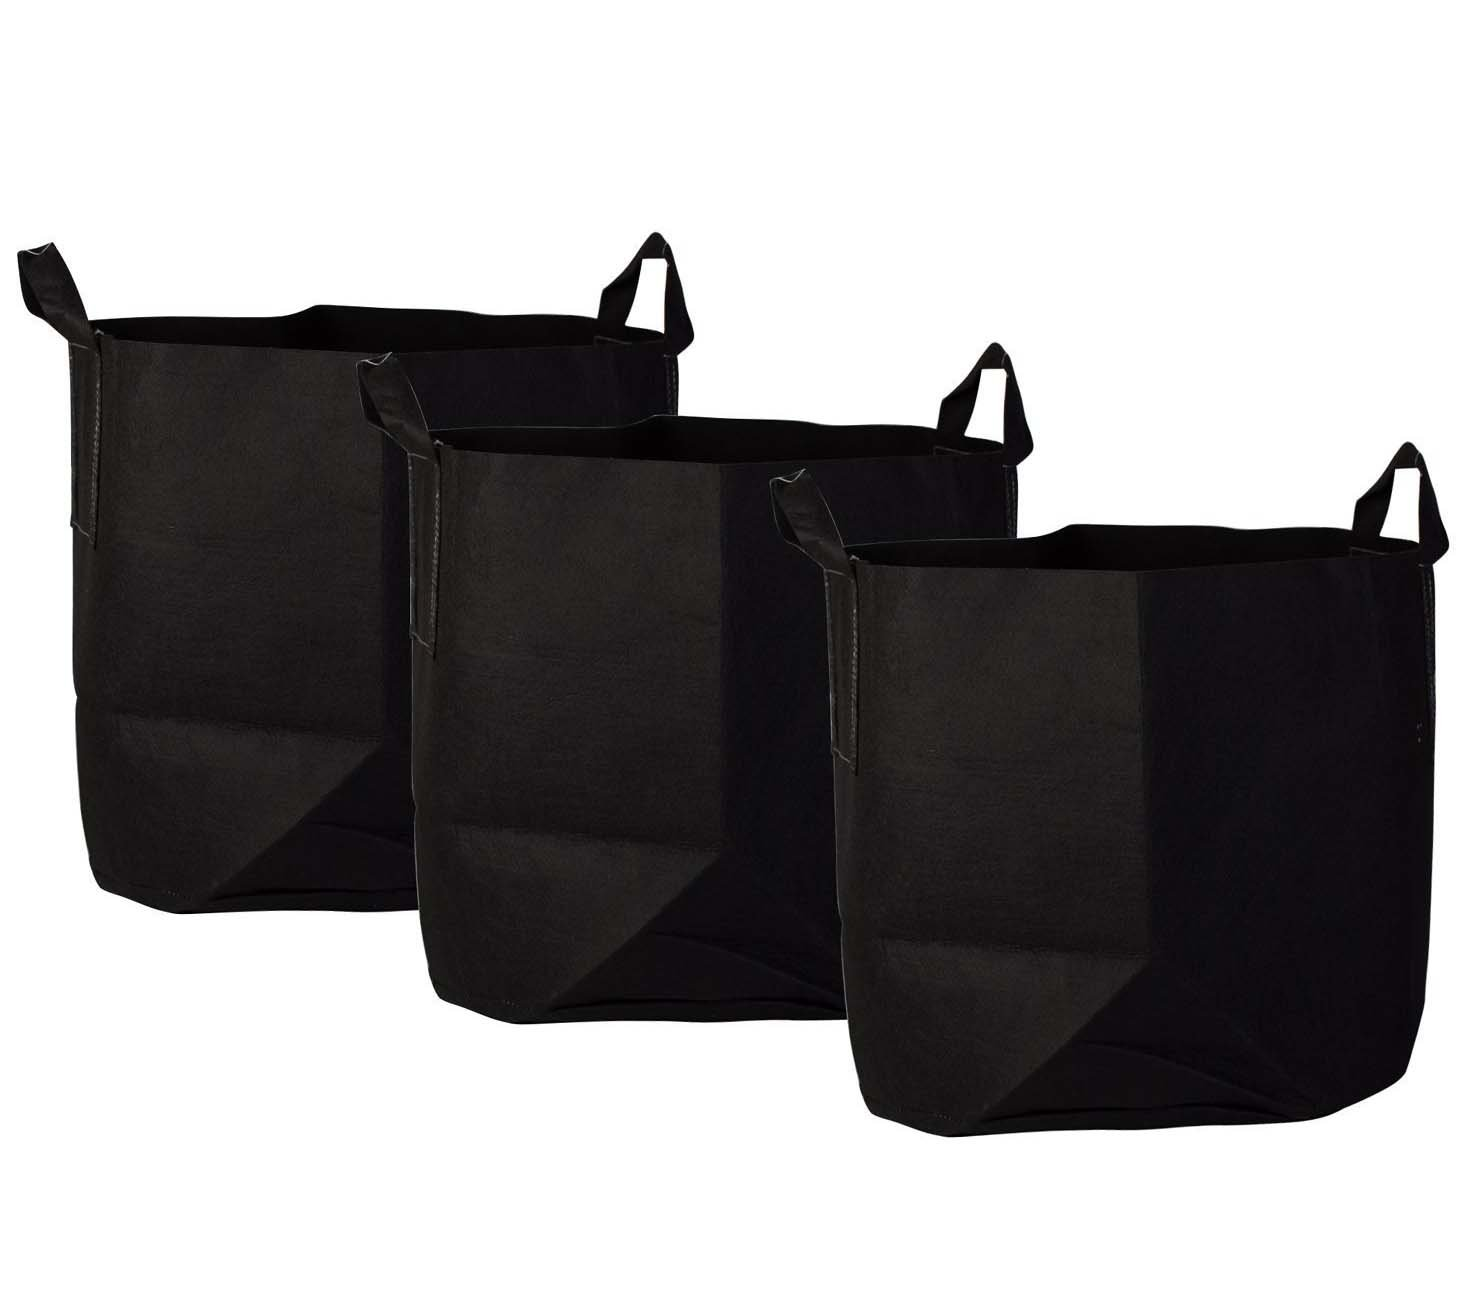 Bekith 10 Gallon 3 Pack Planting Grow Bags Soft-Sided Container/Fabric Plant Bag with Sturdy Handles, Black